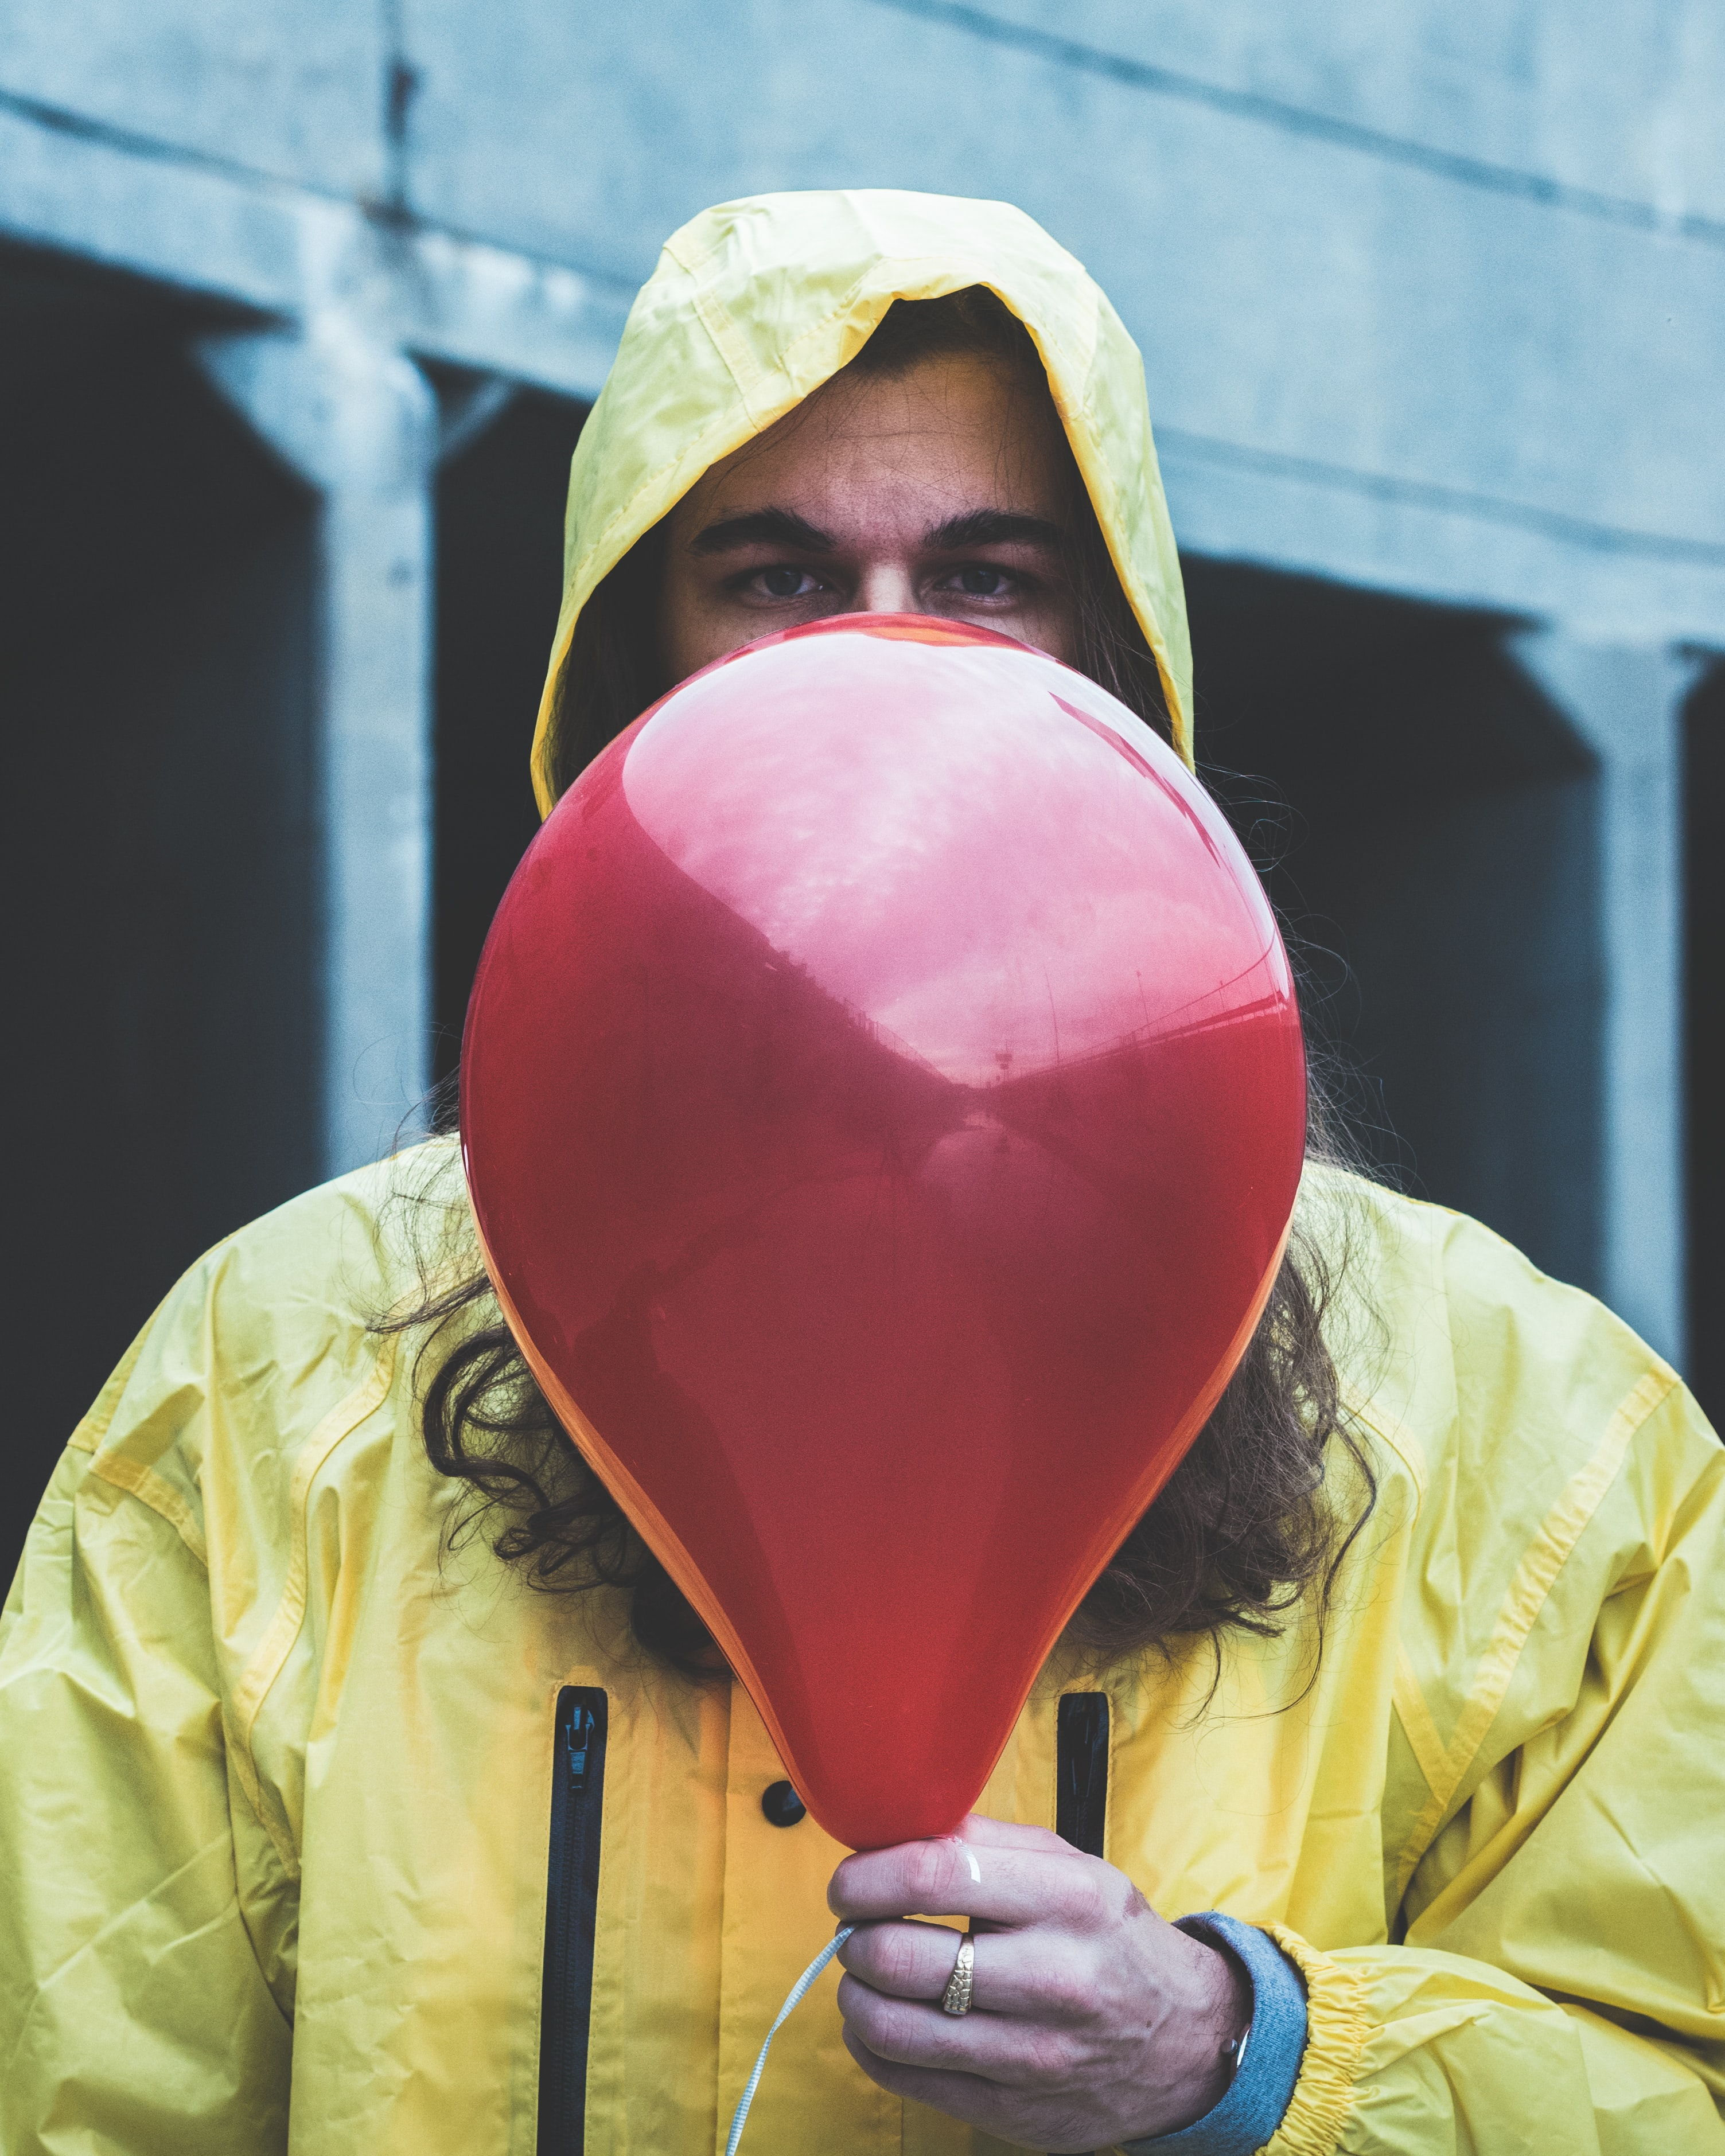 person on raincoat holding red balloon